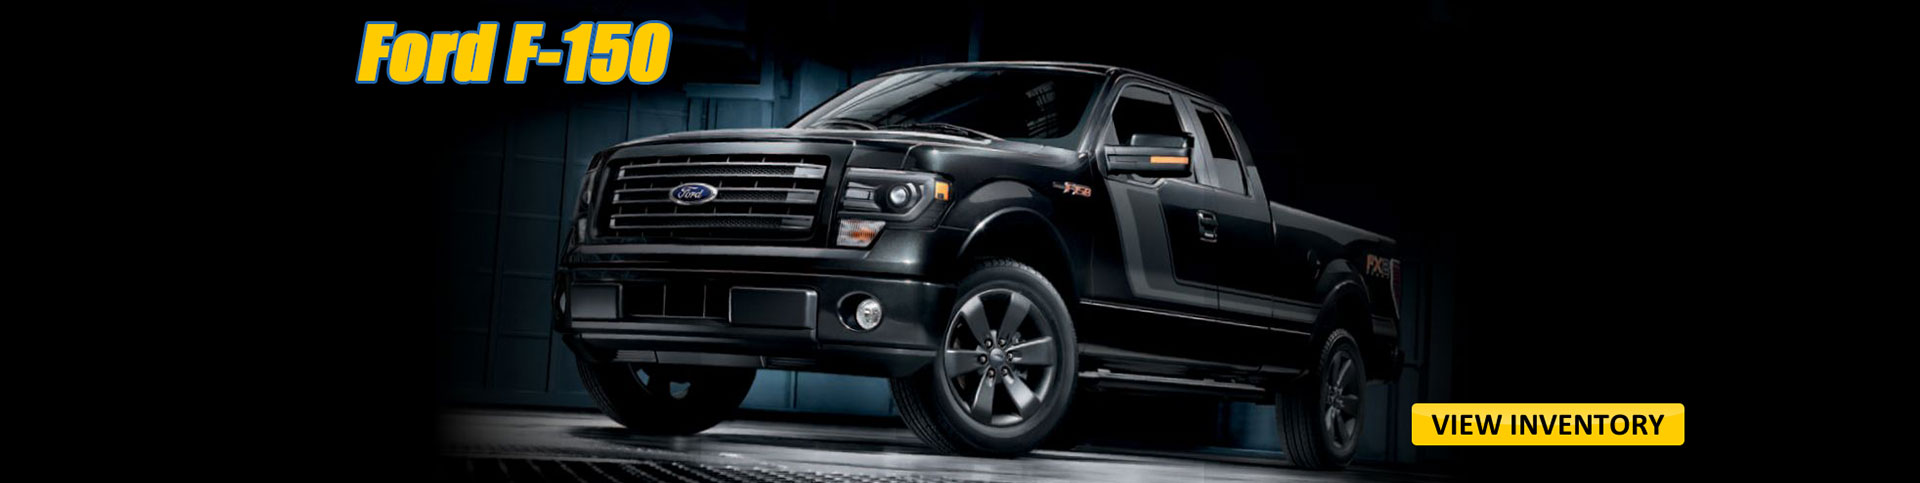 Ford F-150 Lake Elsinore Ford